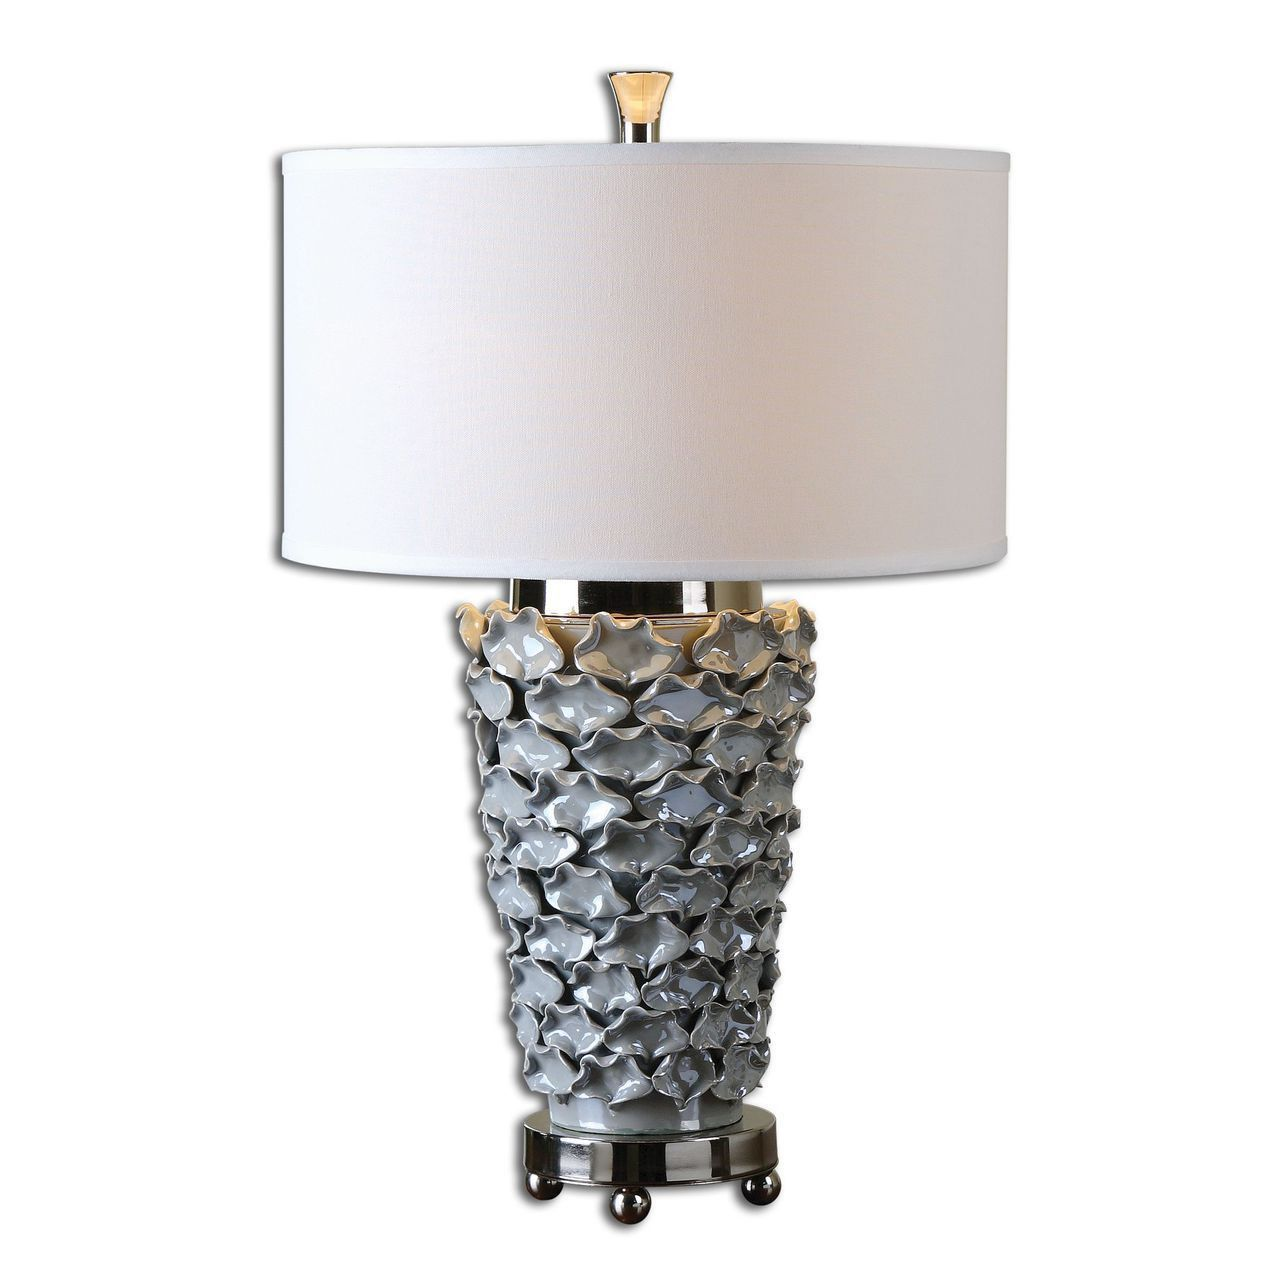 Gray Table Lamps Prepossessing Uttermost Petalo Pearl Gray Table Lamp  Products  Pinterest  Grey Decorating Design